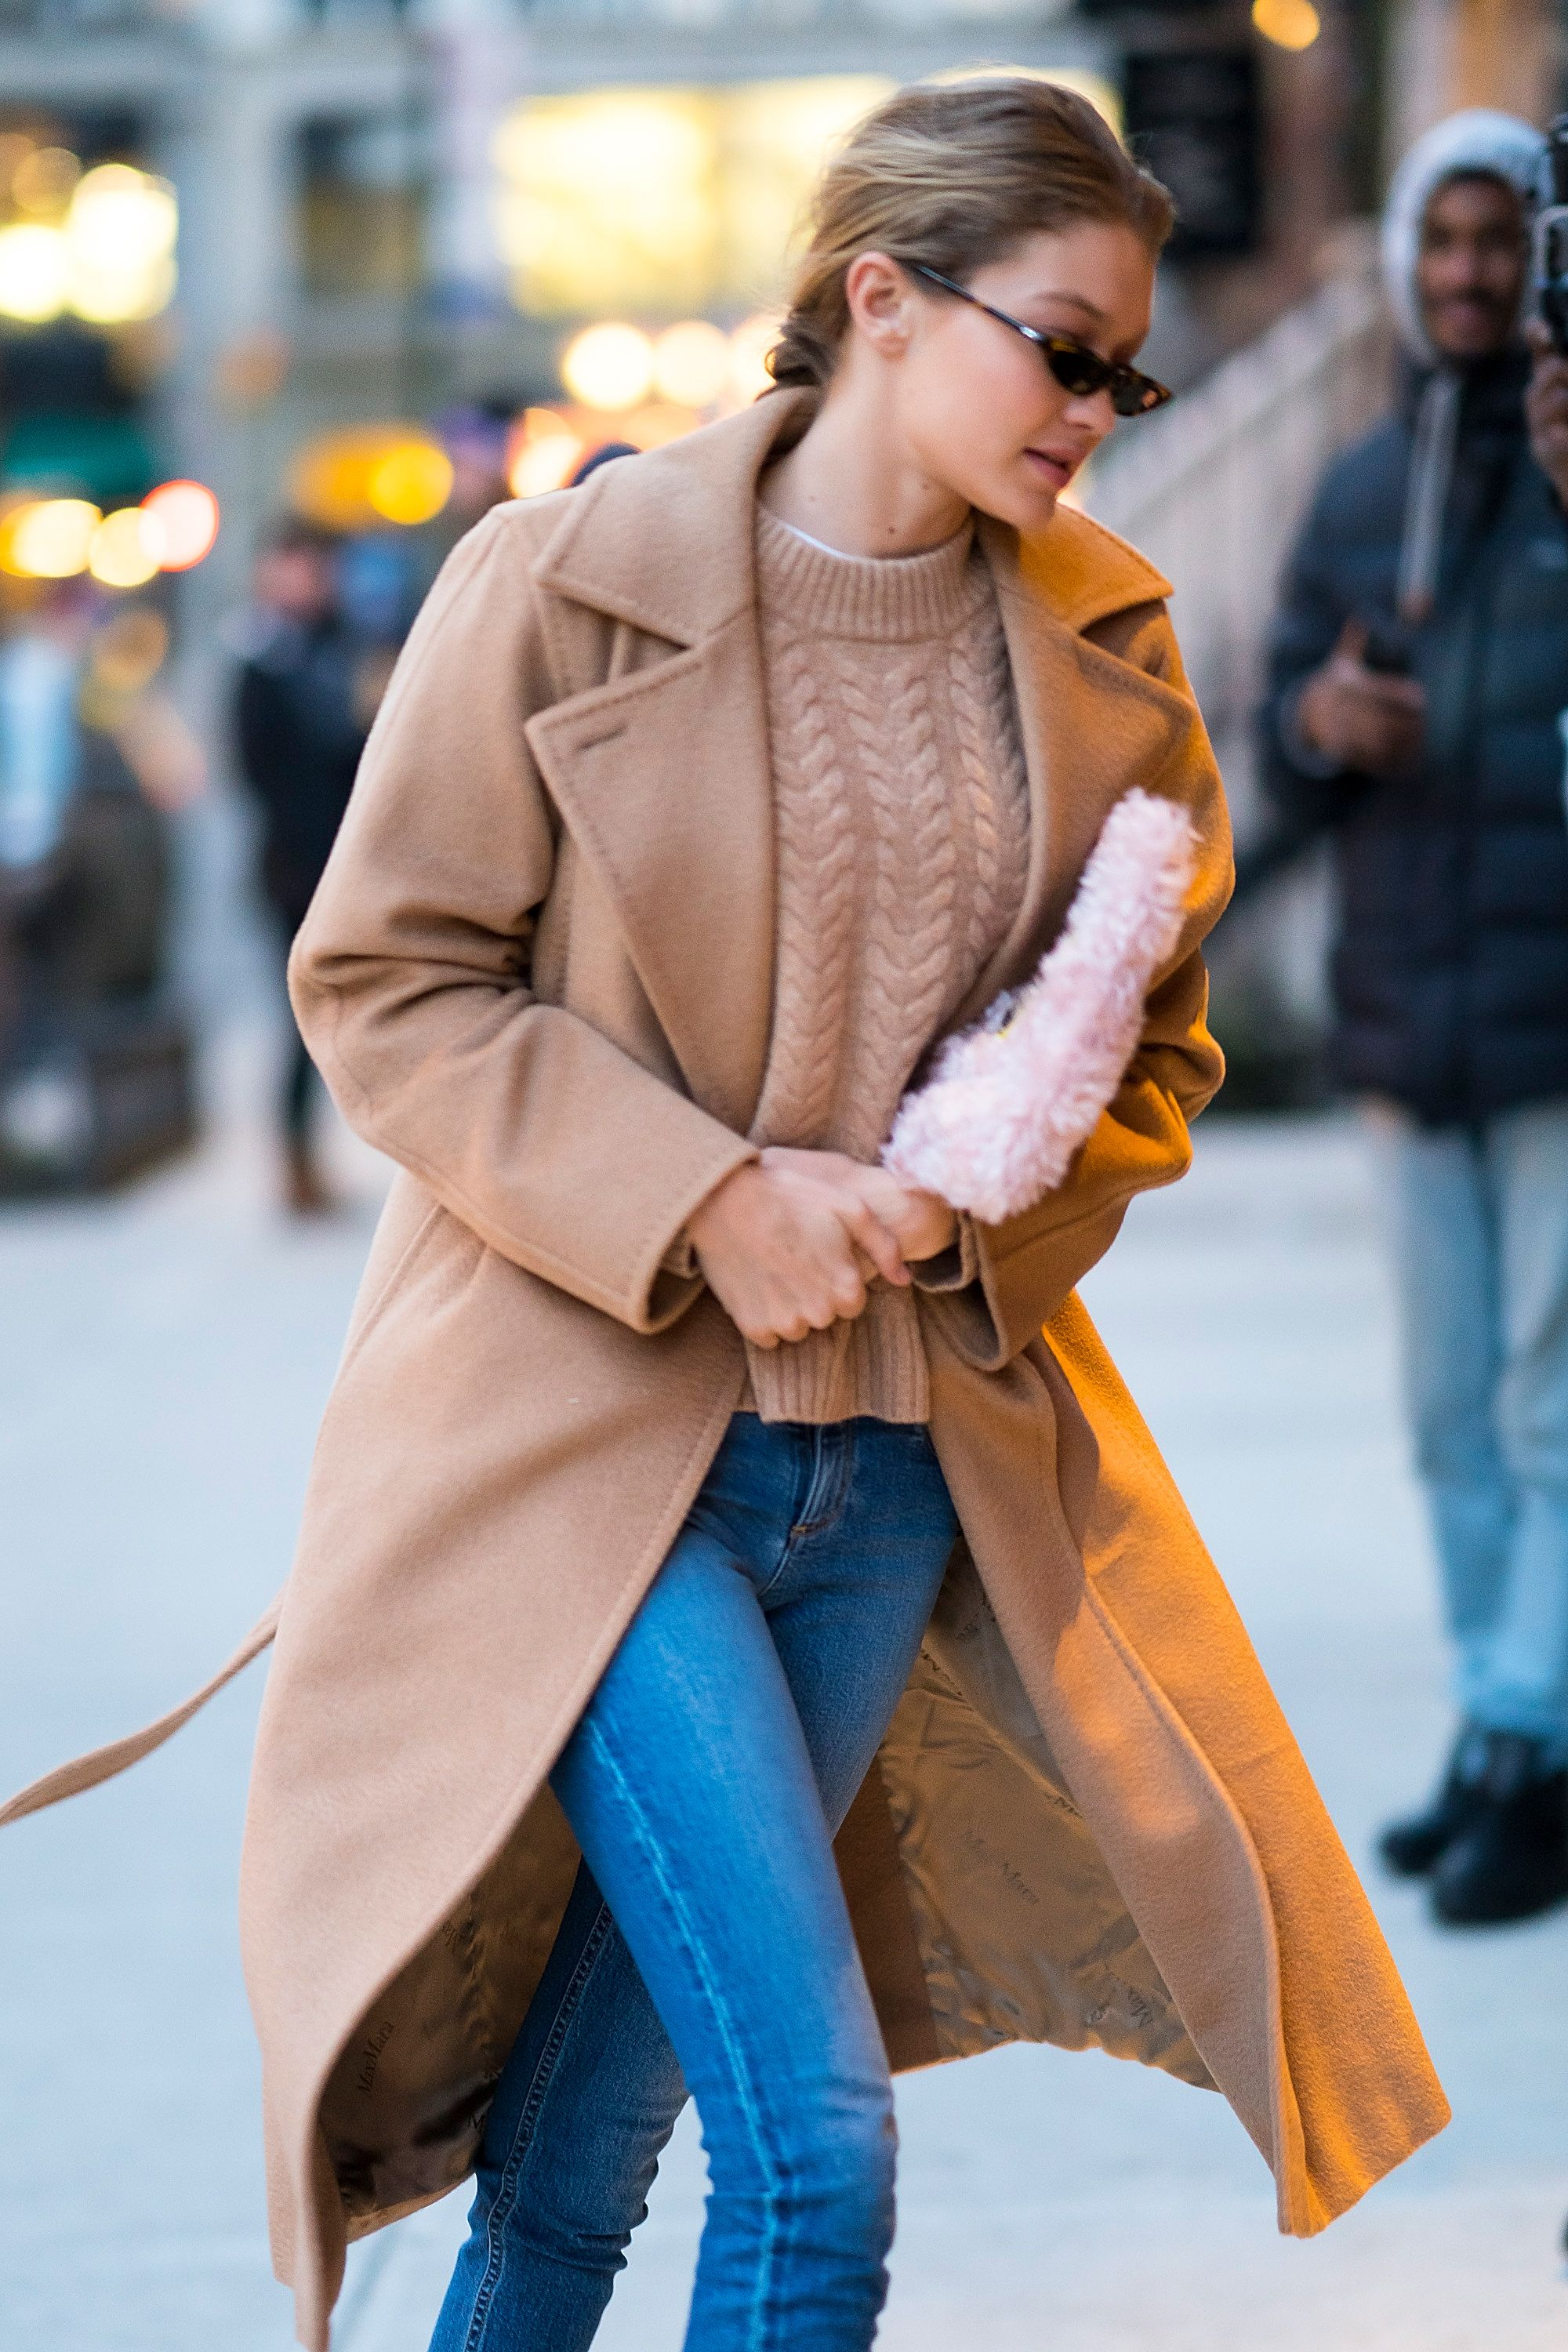 a947a2fad110 The Max Mara Manuela Icon Coat worn by top model Gigi Hadid while out in  New York on January 13th